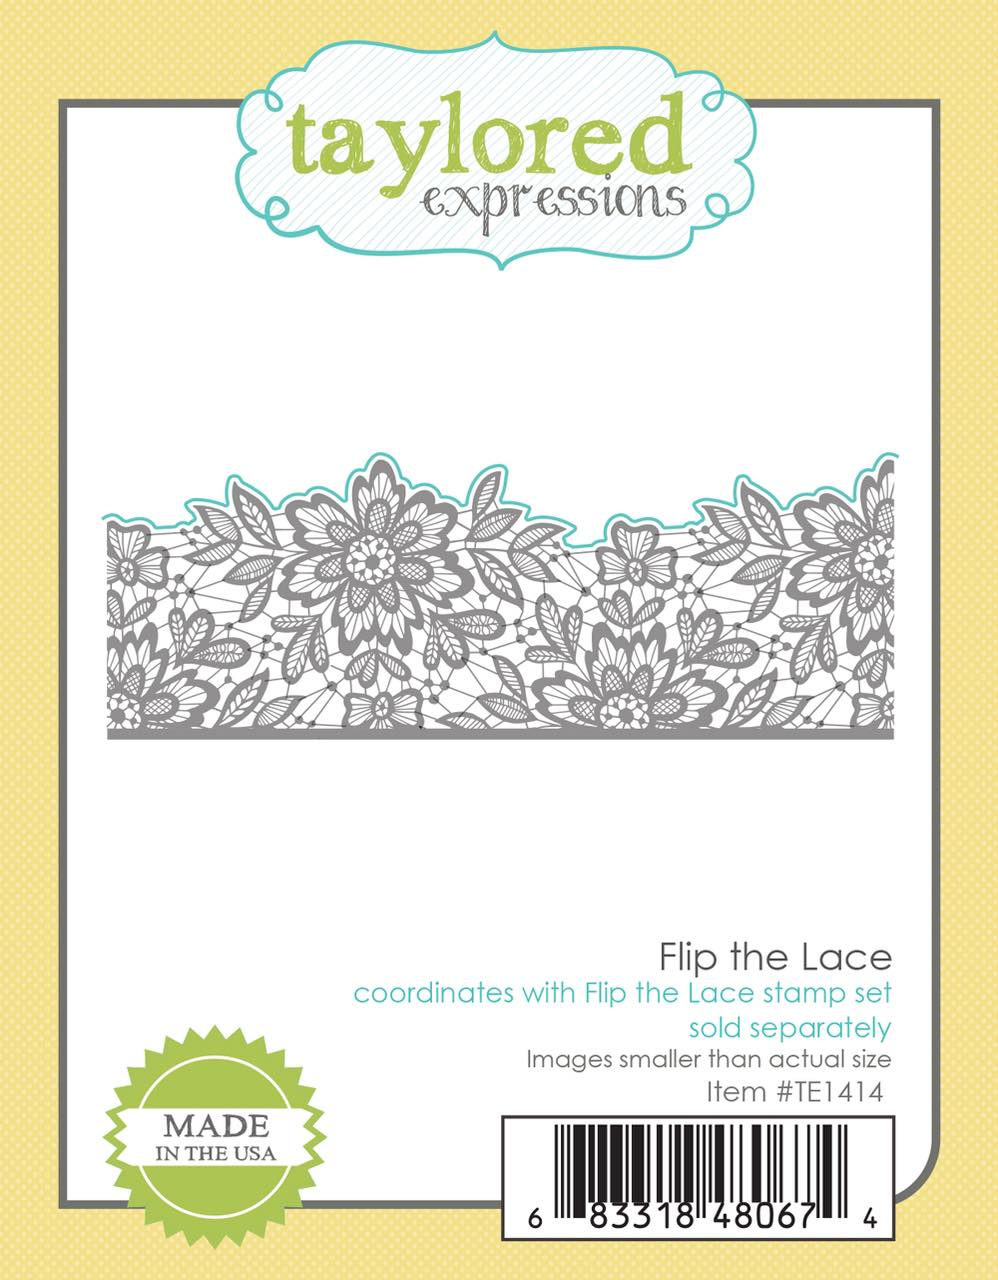 Taylored Expressions - Flip the Lace Stamp Set